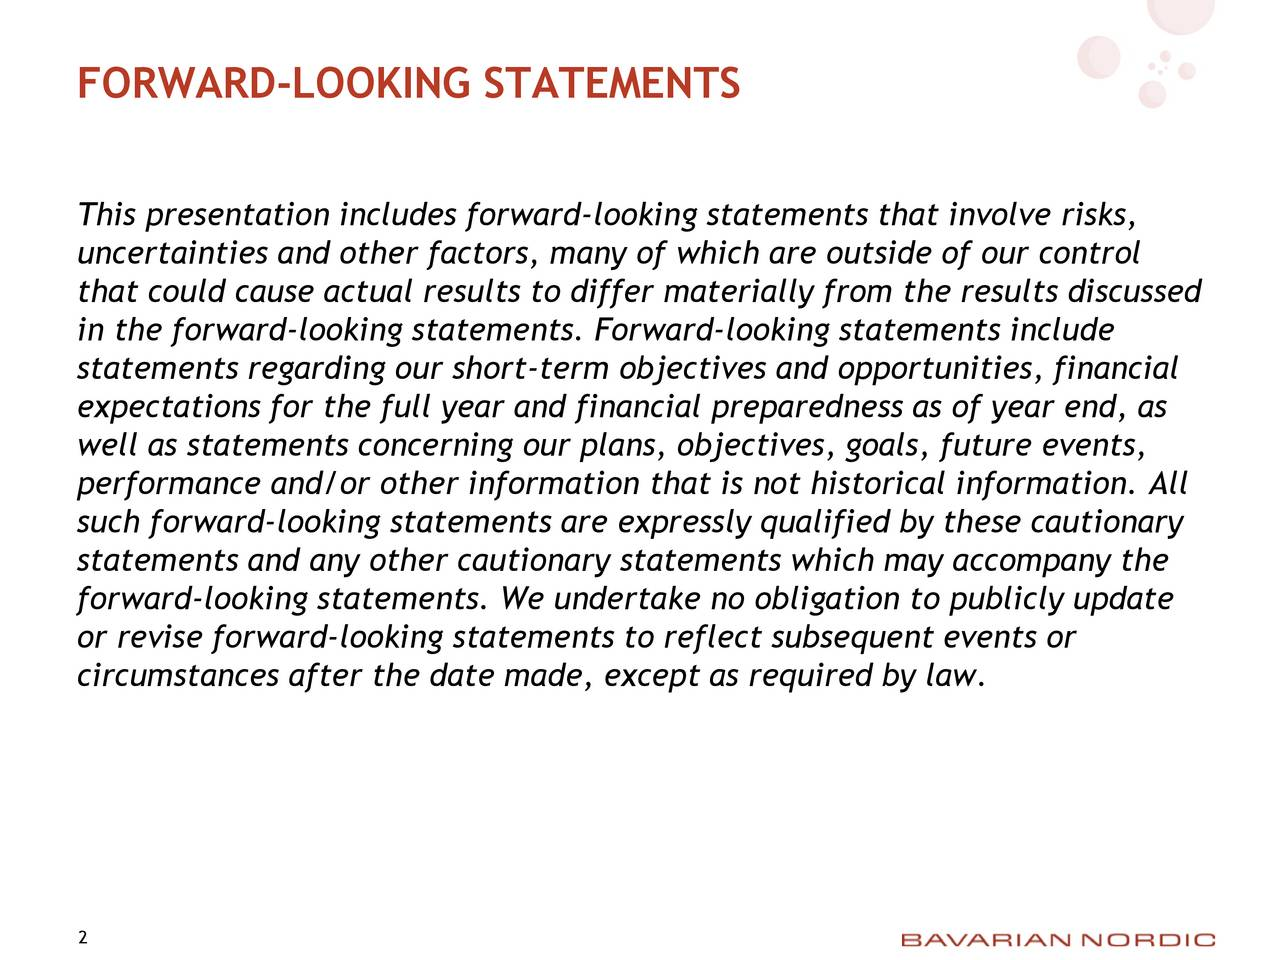 This presentation includes forward-looking statements that involve risks, uncertainties and other factors, many of which are outside of our control that could cause actual results to differ materially from the results discussed in the forward-looking statements. Forward-looking statements include statements regarding our short-term objectives and opportunities, financial expectations for the full year and financial preparedness as of year end, as well as statements concerning our plans, objectives, goals, future events, performance and/or other information that is not historical information. All such forward-looking statements are expressly qualified by these cautionary statements and any other cautionary statements which may accompany the forward-looking statements. We undertake no obligation to publicly update or revise forward-looking statements to reflect subsequent events or circumstances after the date made, except as required by law. 2